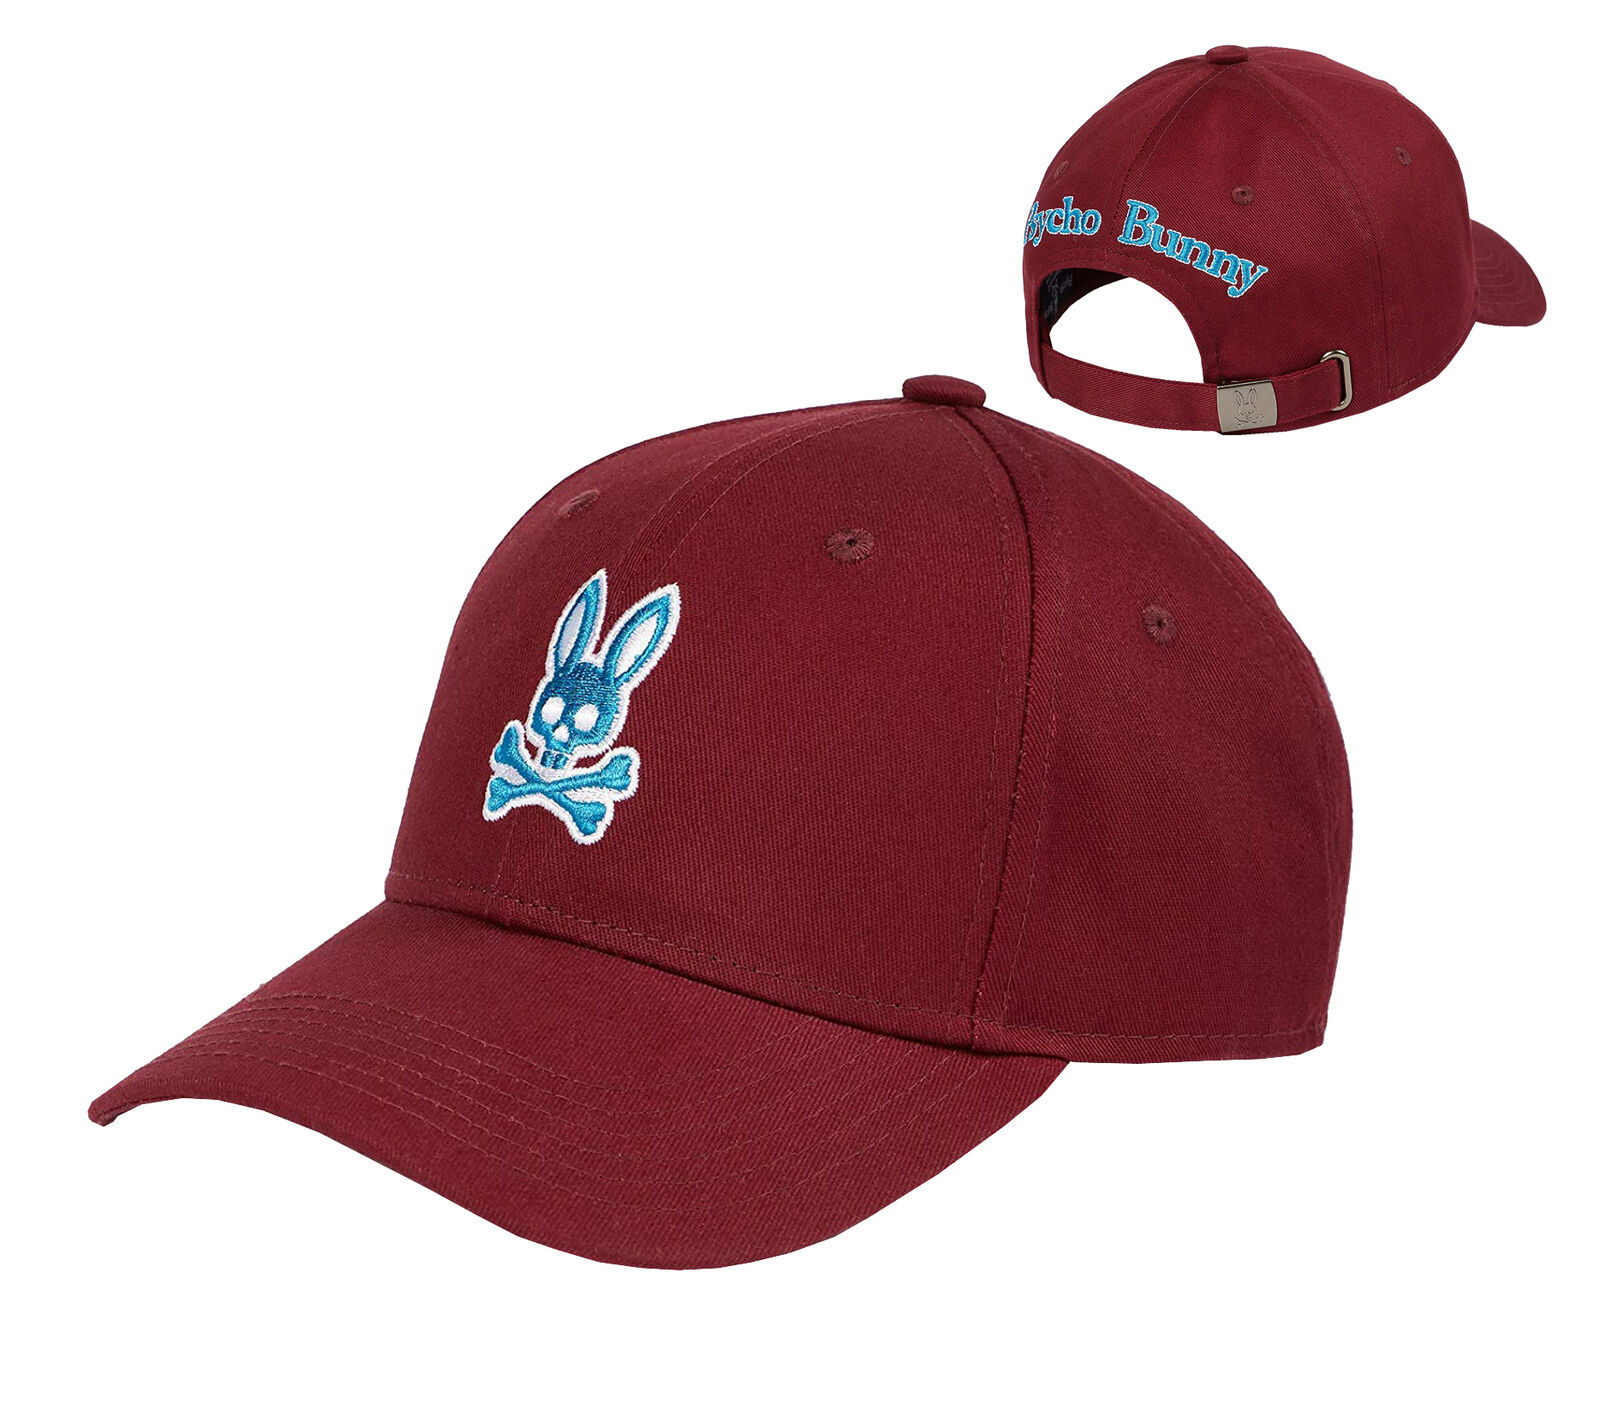 Psycho Bunny Men's Strapback Hat Embroidered Logo Cotton Sports Baseball Cap